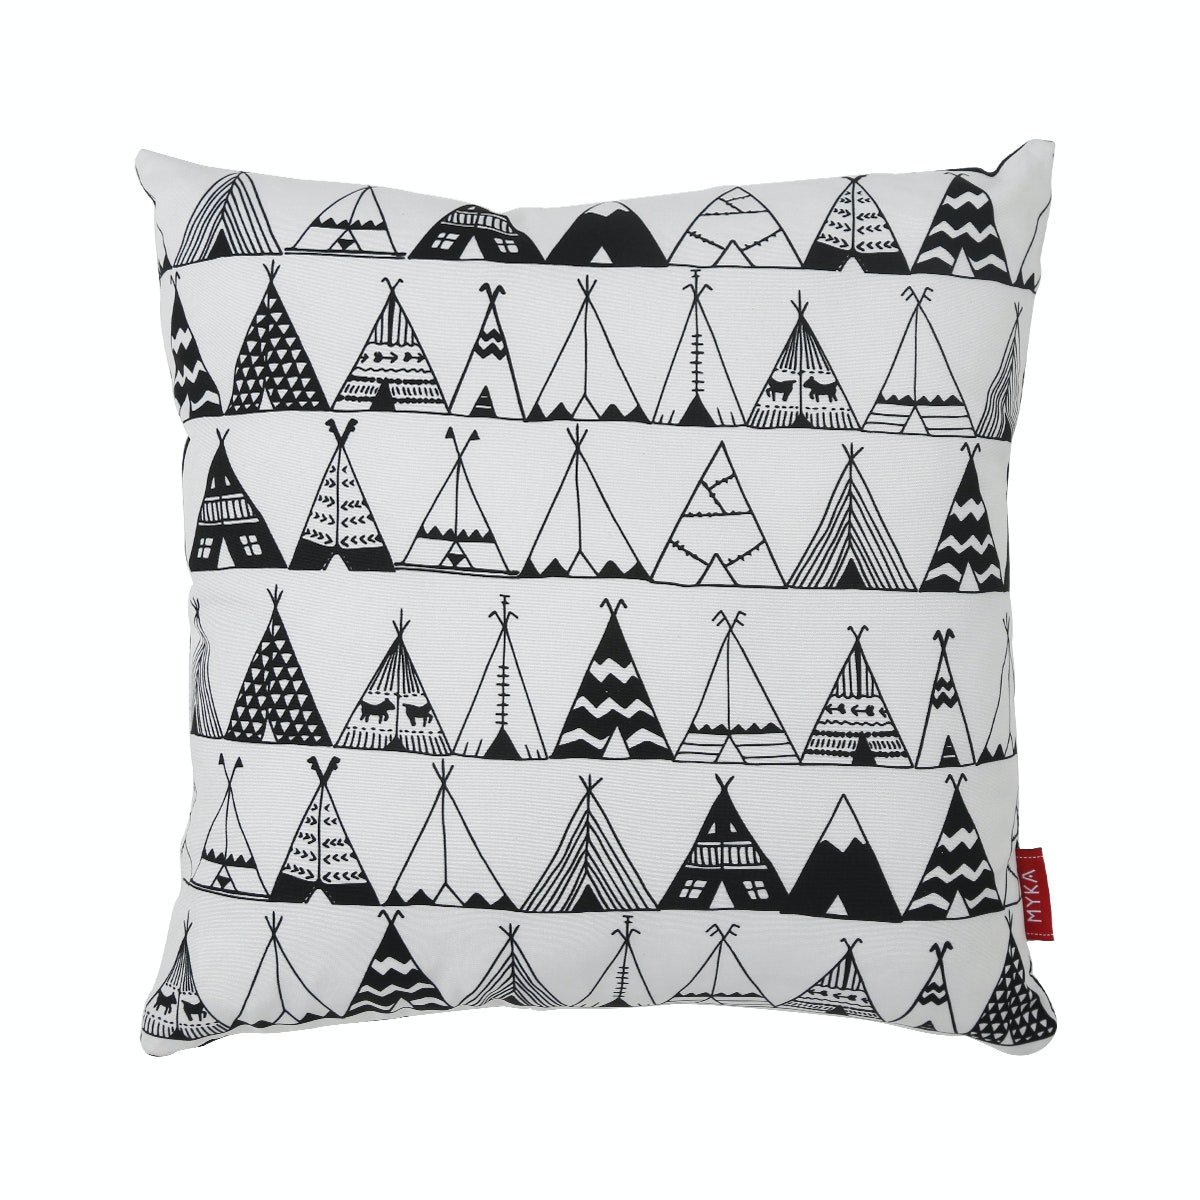 Myka_kids Cushion Cover 40x40 - BW Teepee Tent